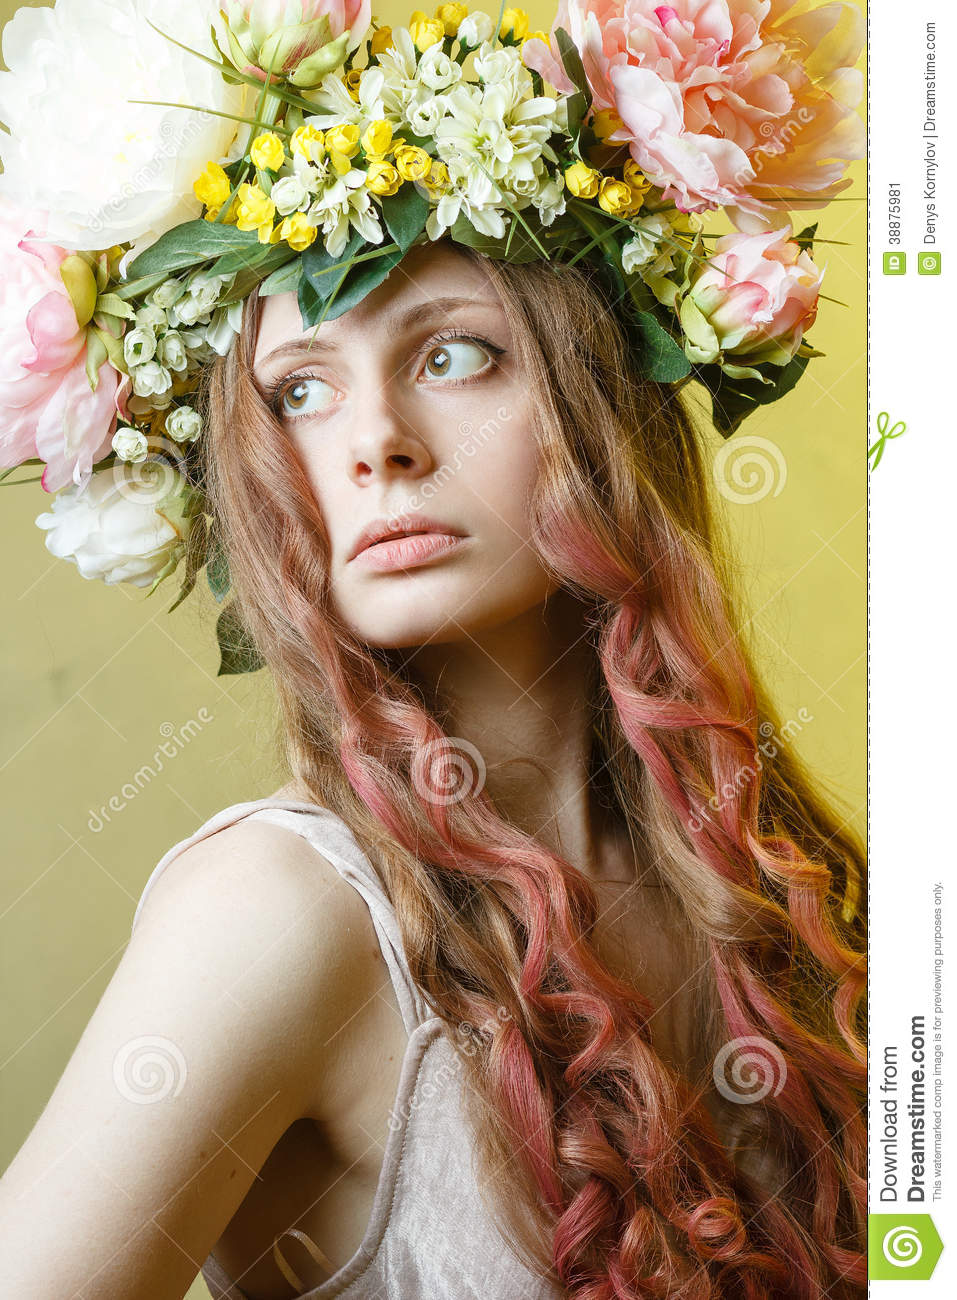 Pretty girl with flower crown on head stock image image of pretty girl with flower crown on head izmirmasajfo